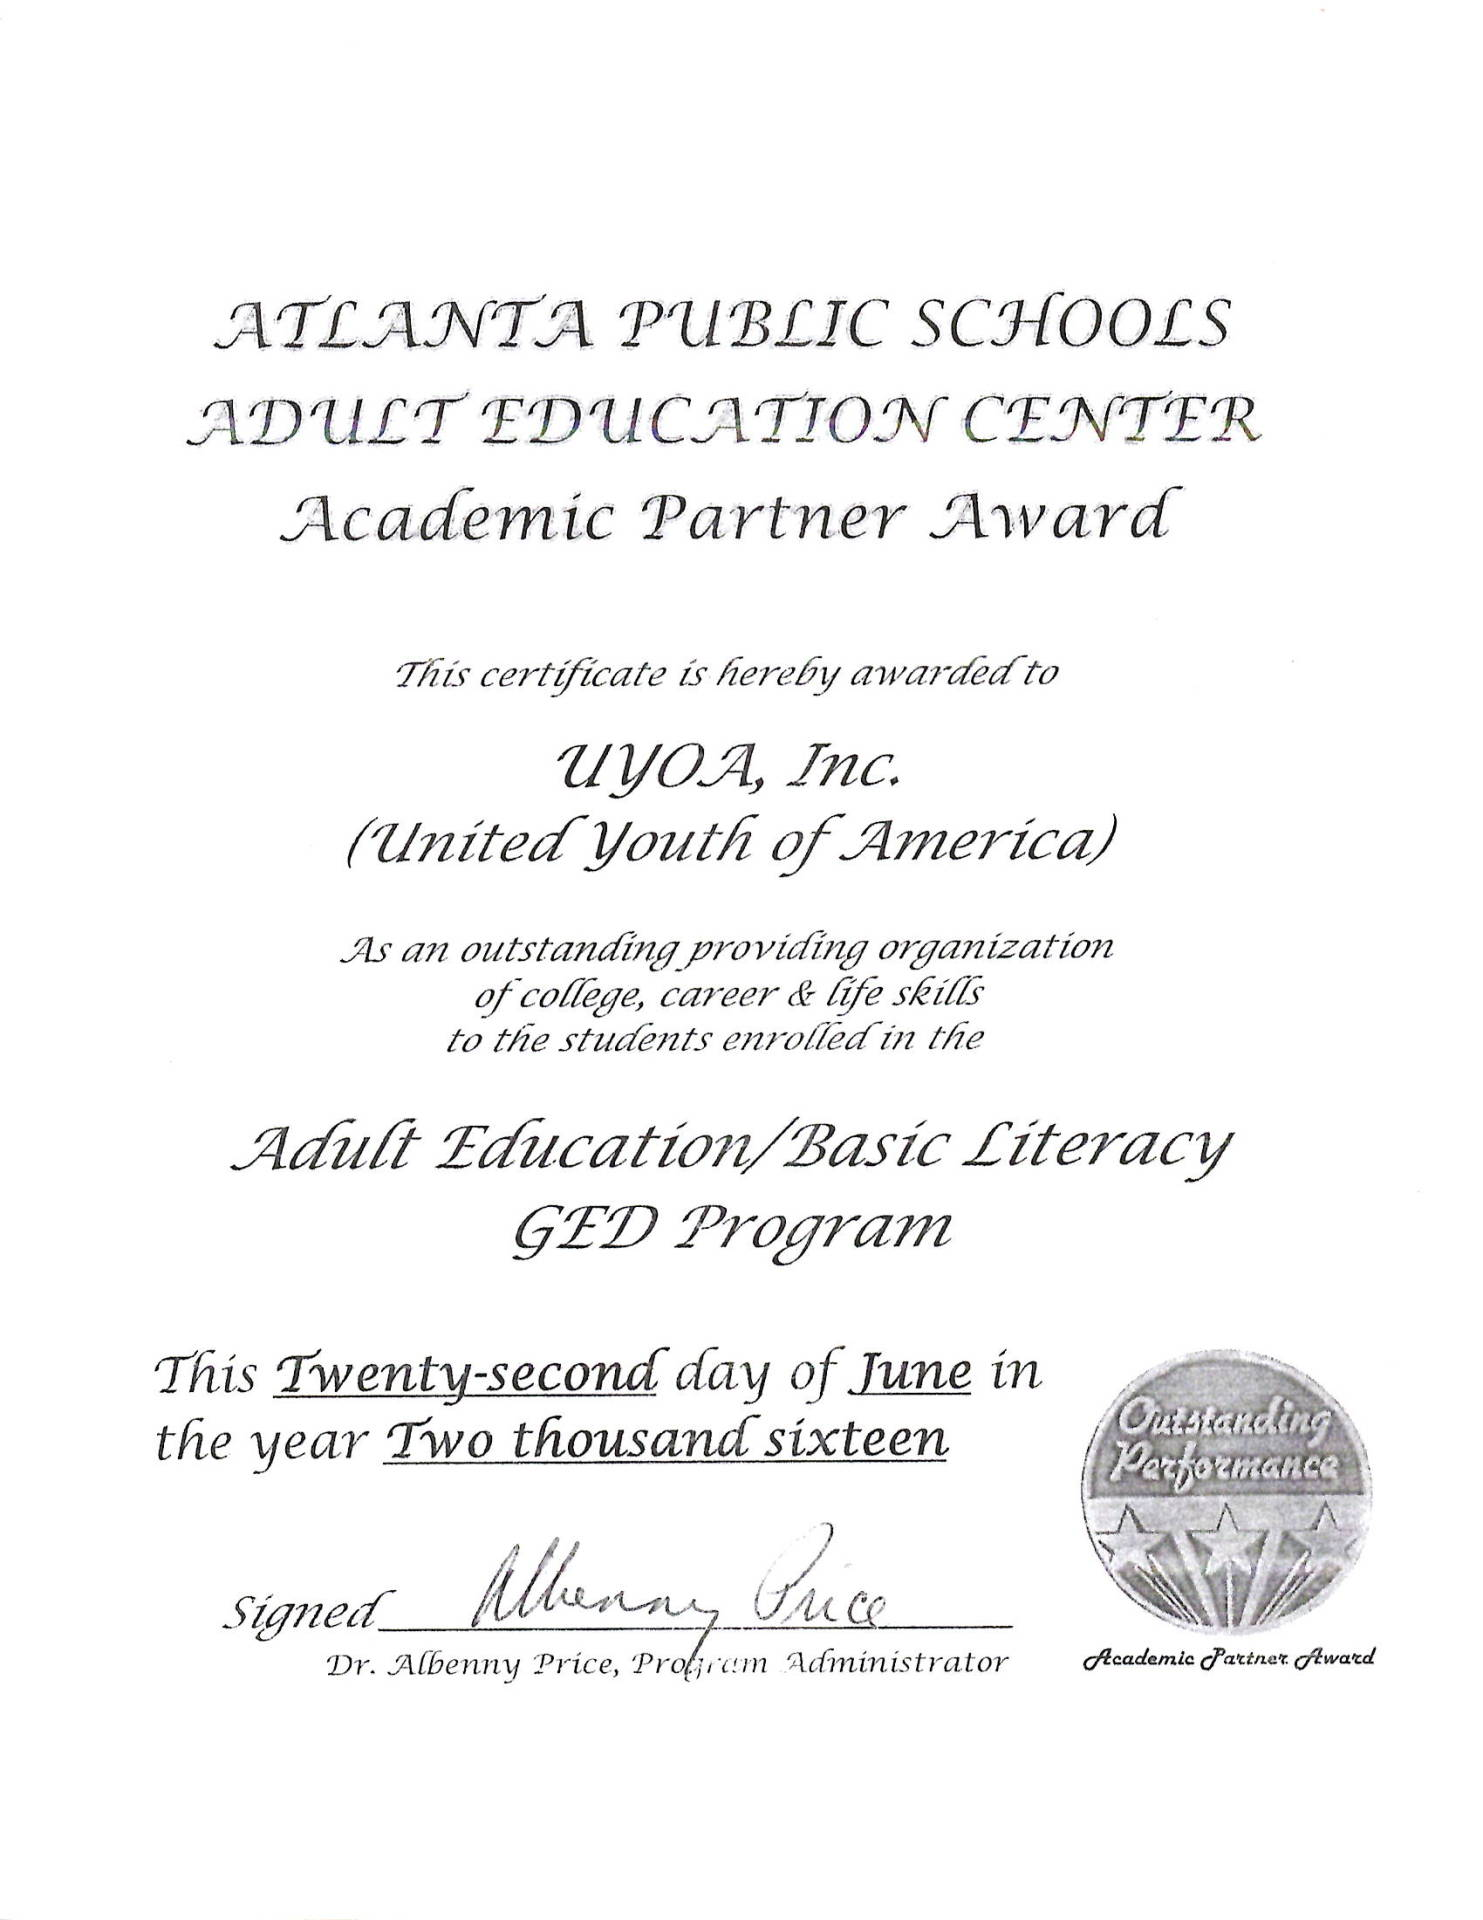 Academic Partner Award Atlanta Public Schools Adults Education